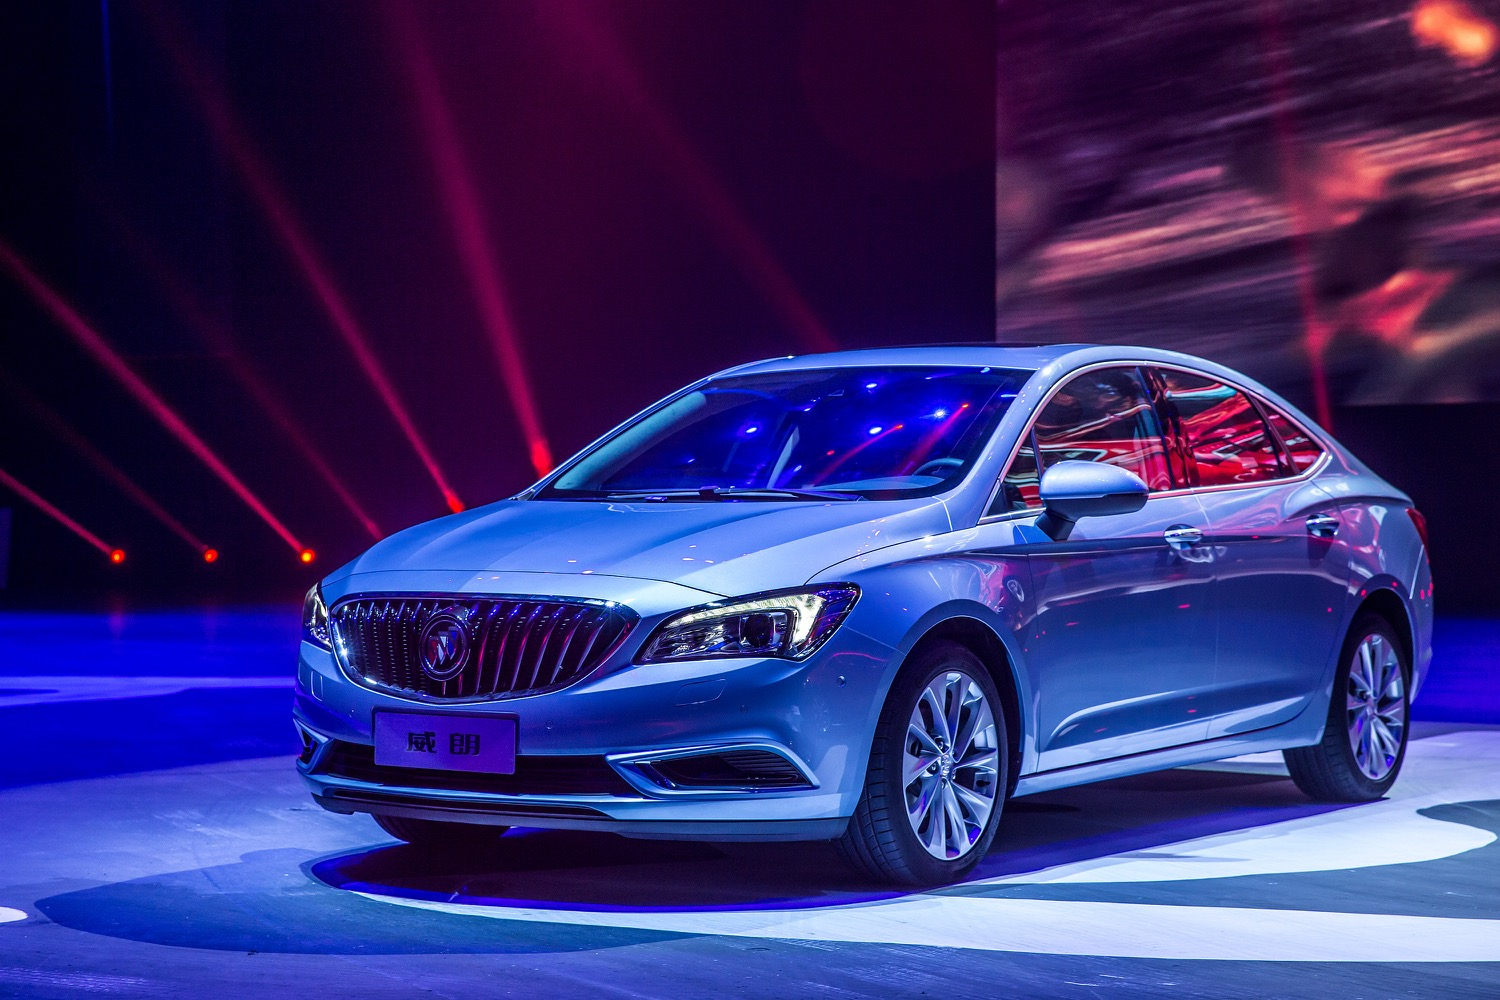 2017 Buick Verano Info, Specs, Pictures, Wiki | Gm Authority 2022 Buick Verano Recalls, Specs, Oil Type